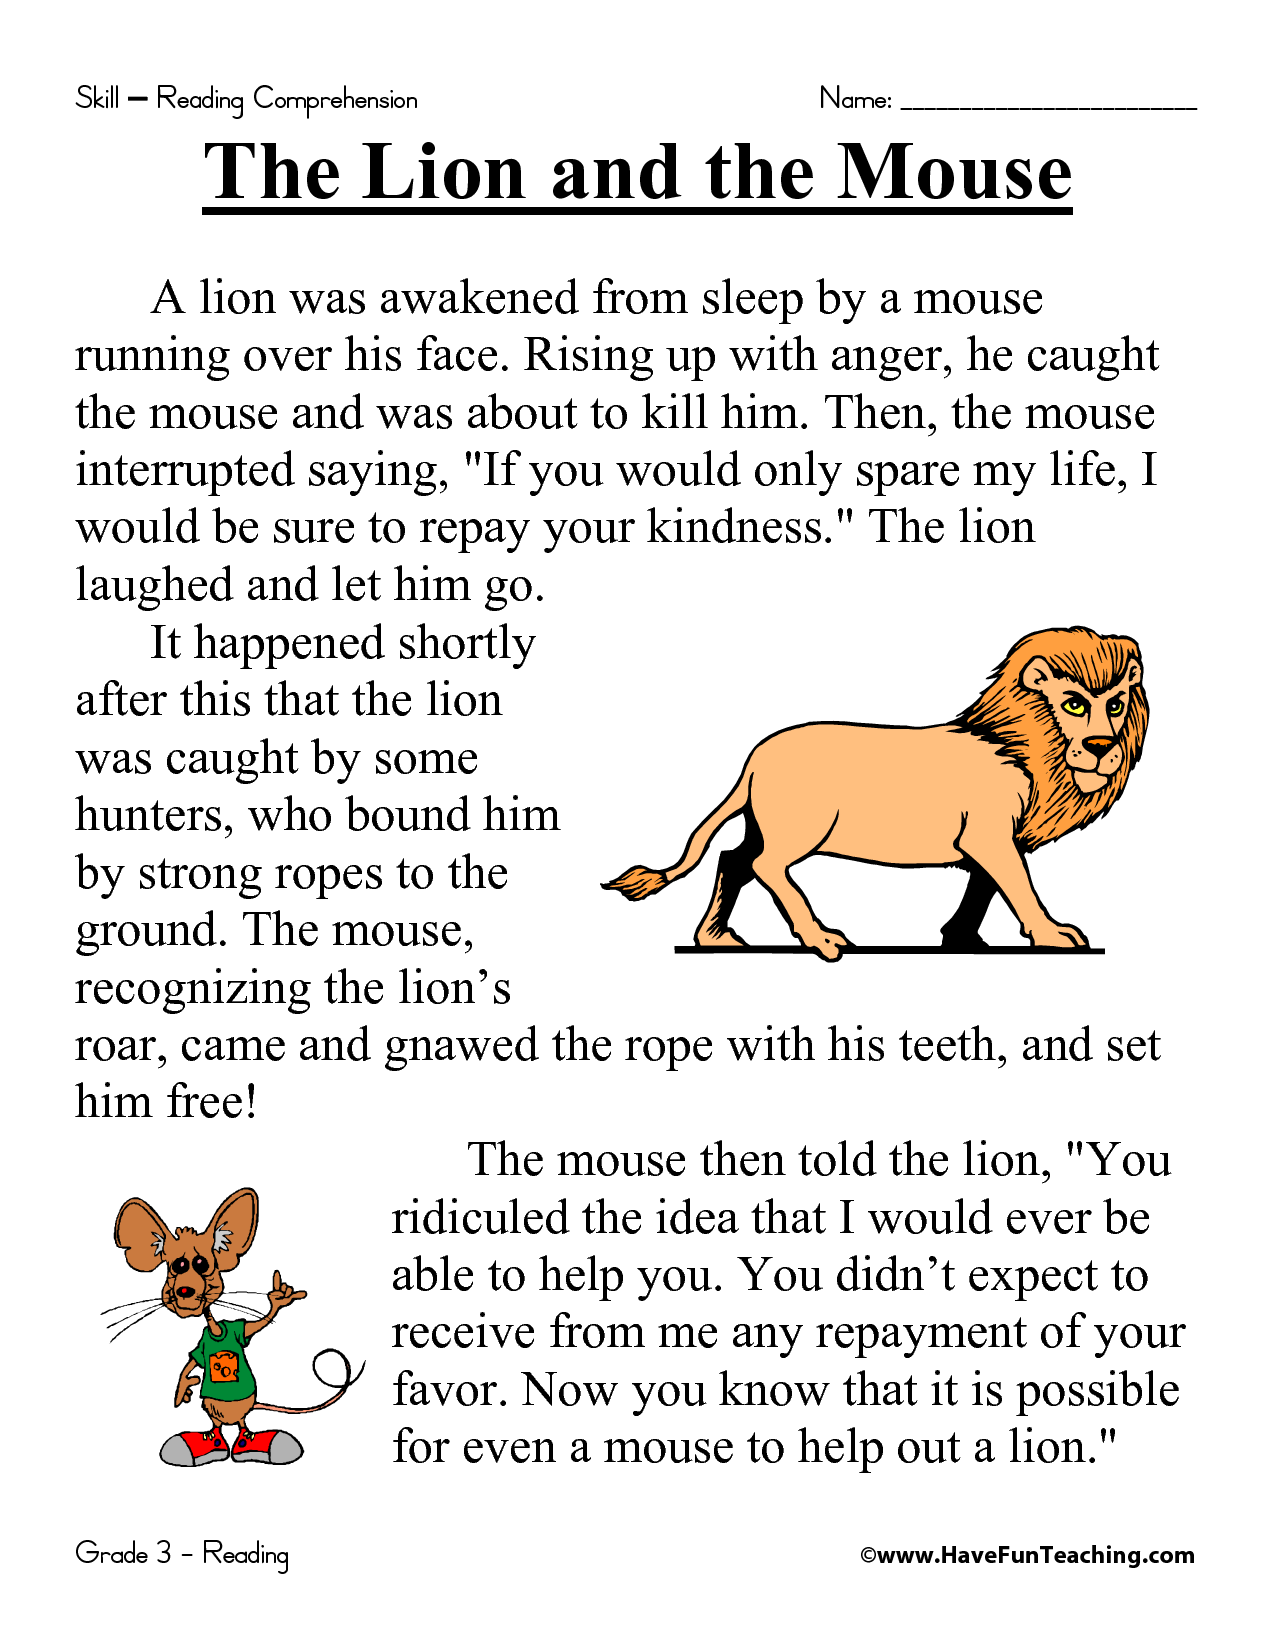 Worksheet Reading First Grade Worksheets first grade reading comprehension worksheets the lion and mouse worksheet